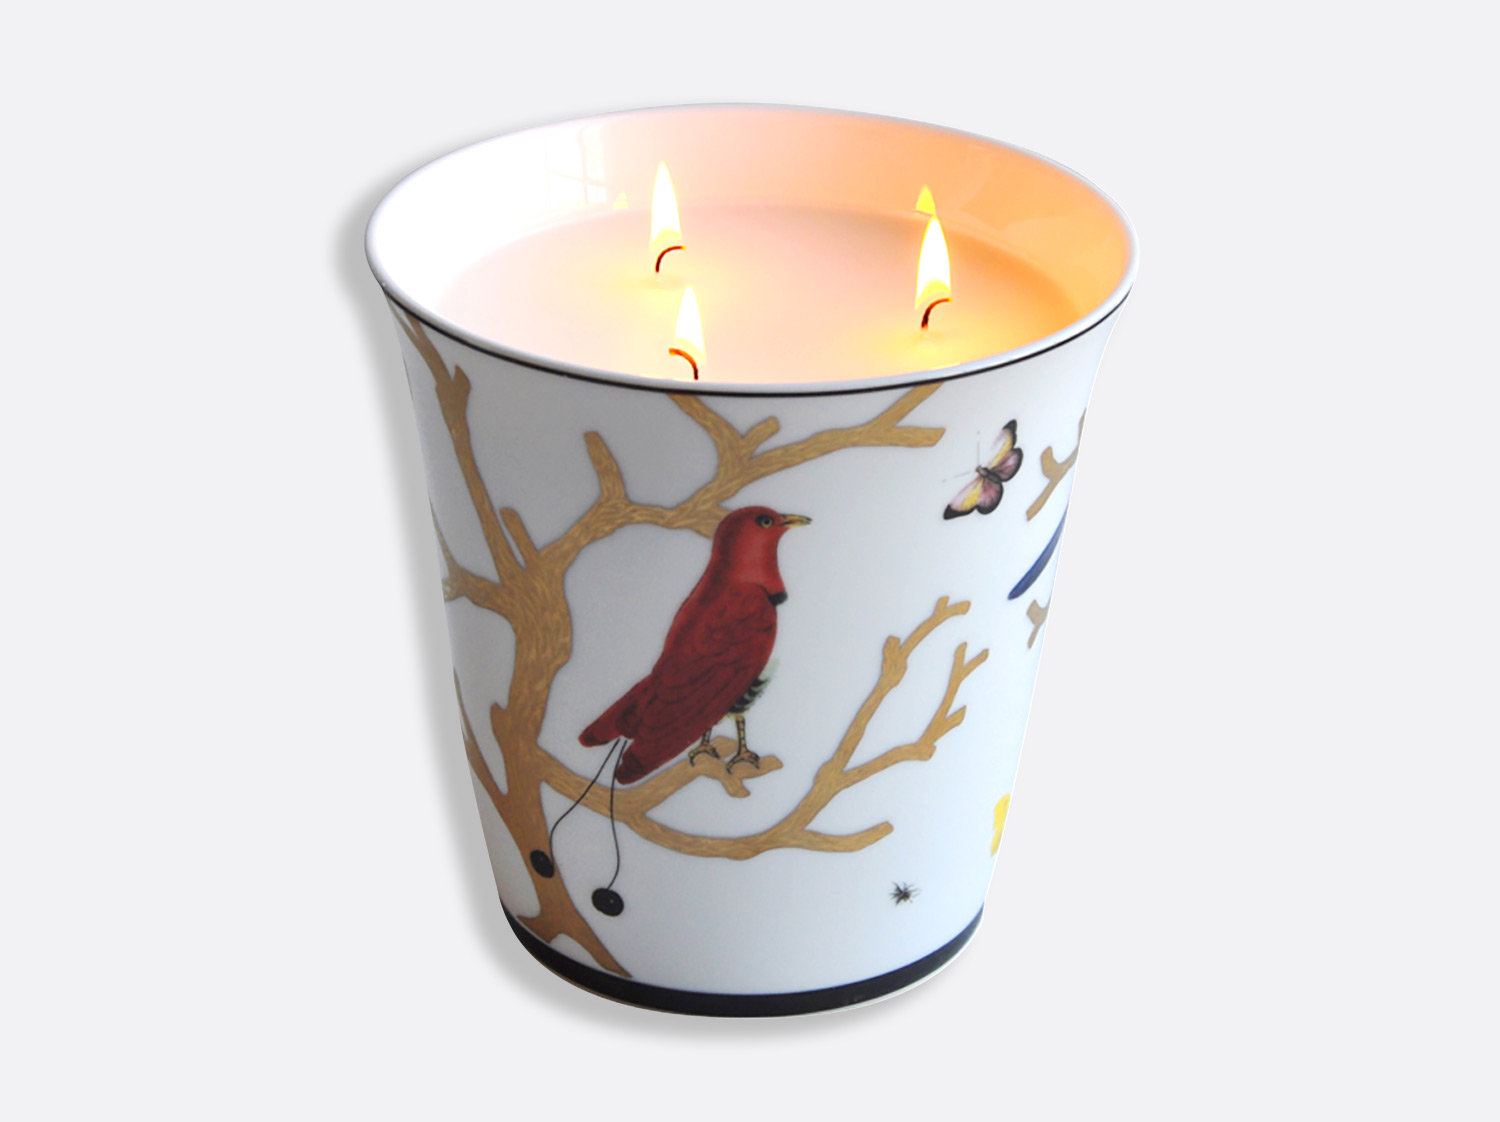 China Large candle tumbler H. 15 cm D. 15 cm of the collection Aux oiseaux | Bernardaud